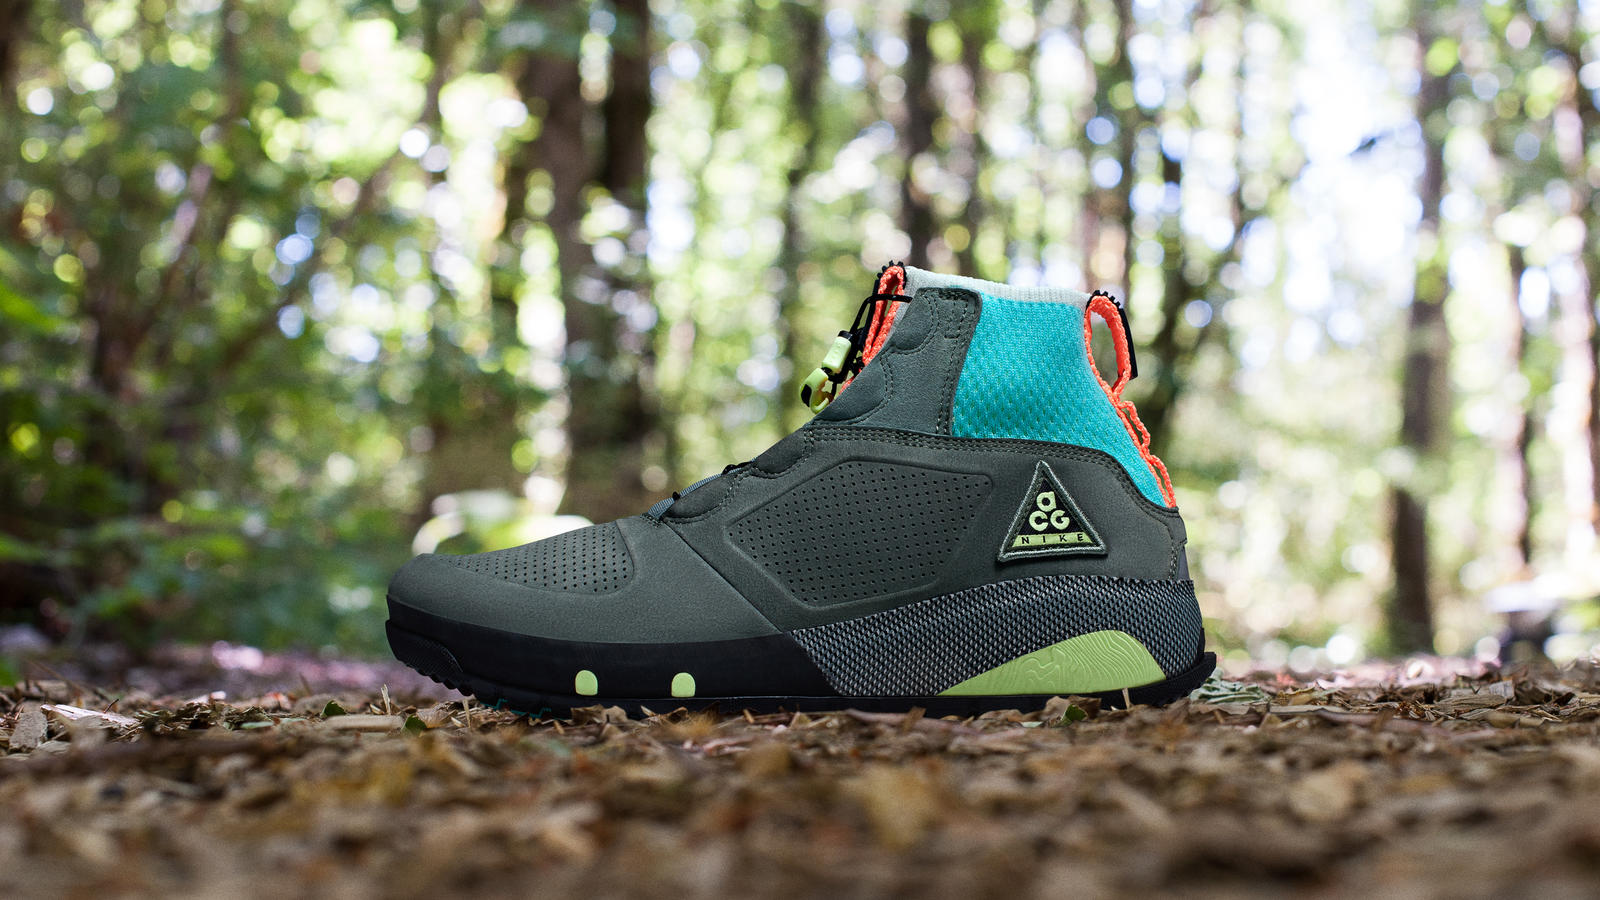 Featuredfootwear acg ruckelridge dsc 7328 hd 1600